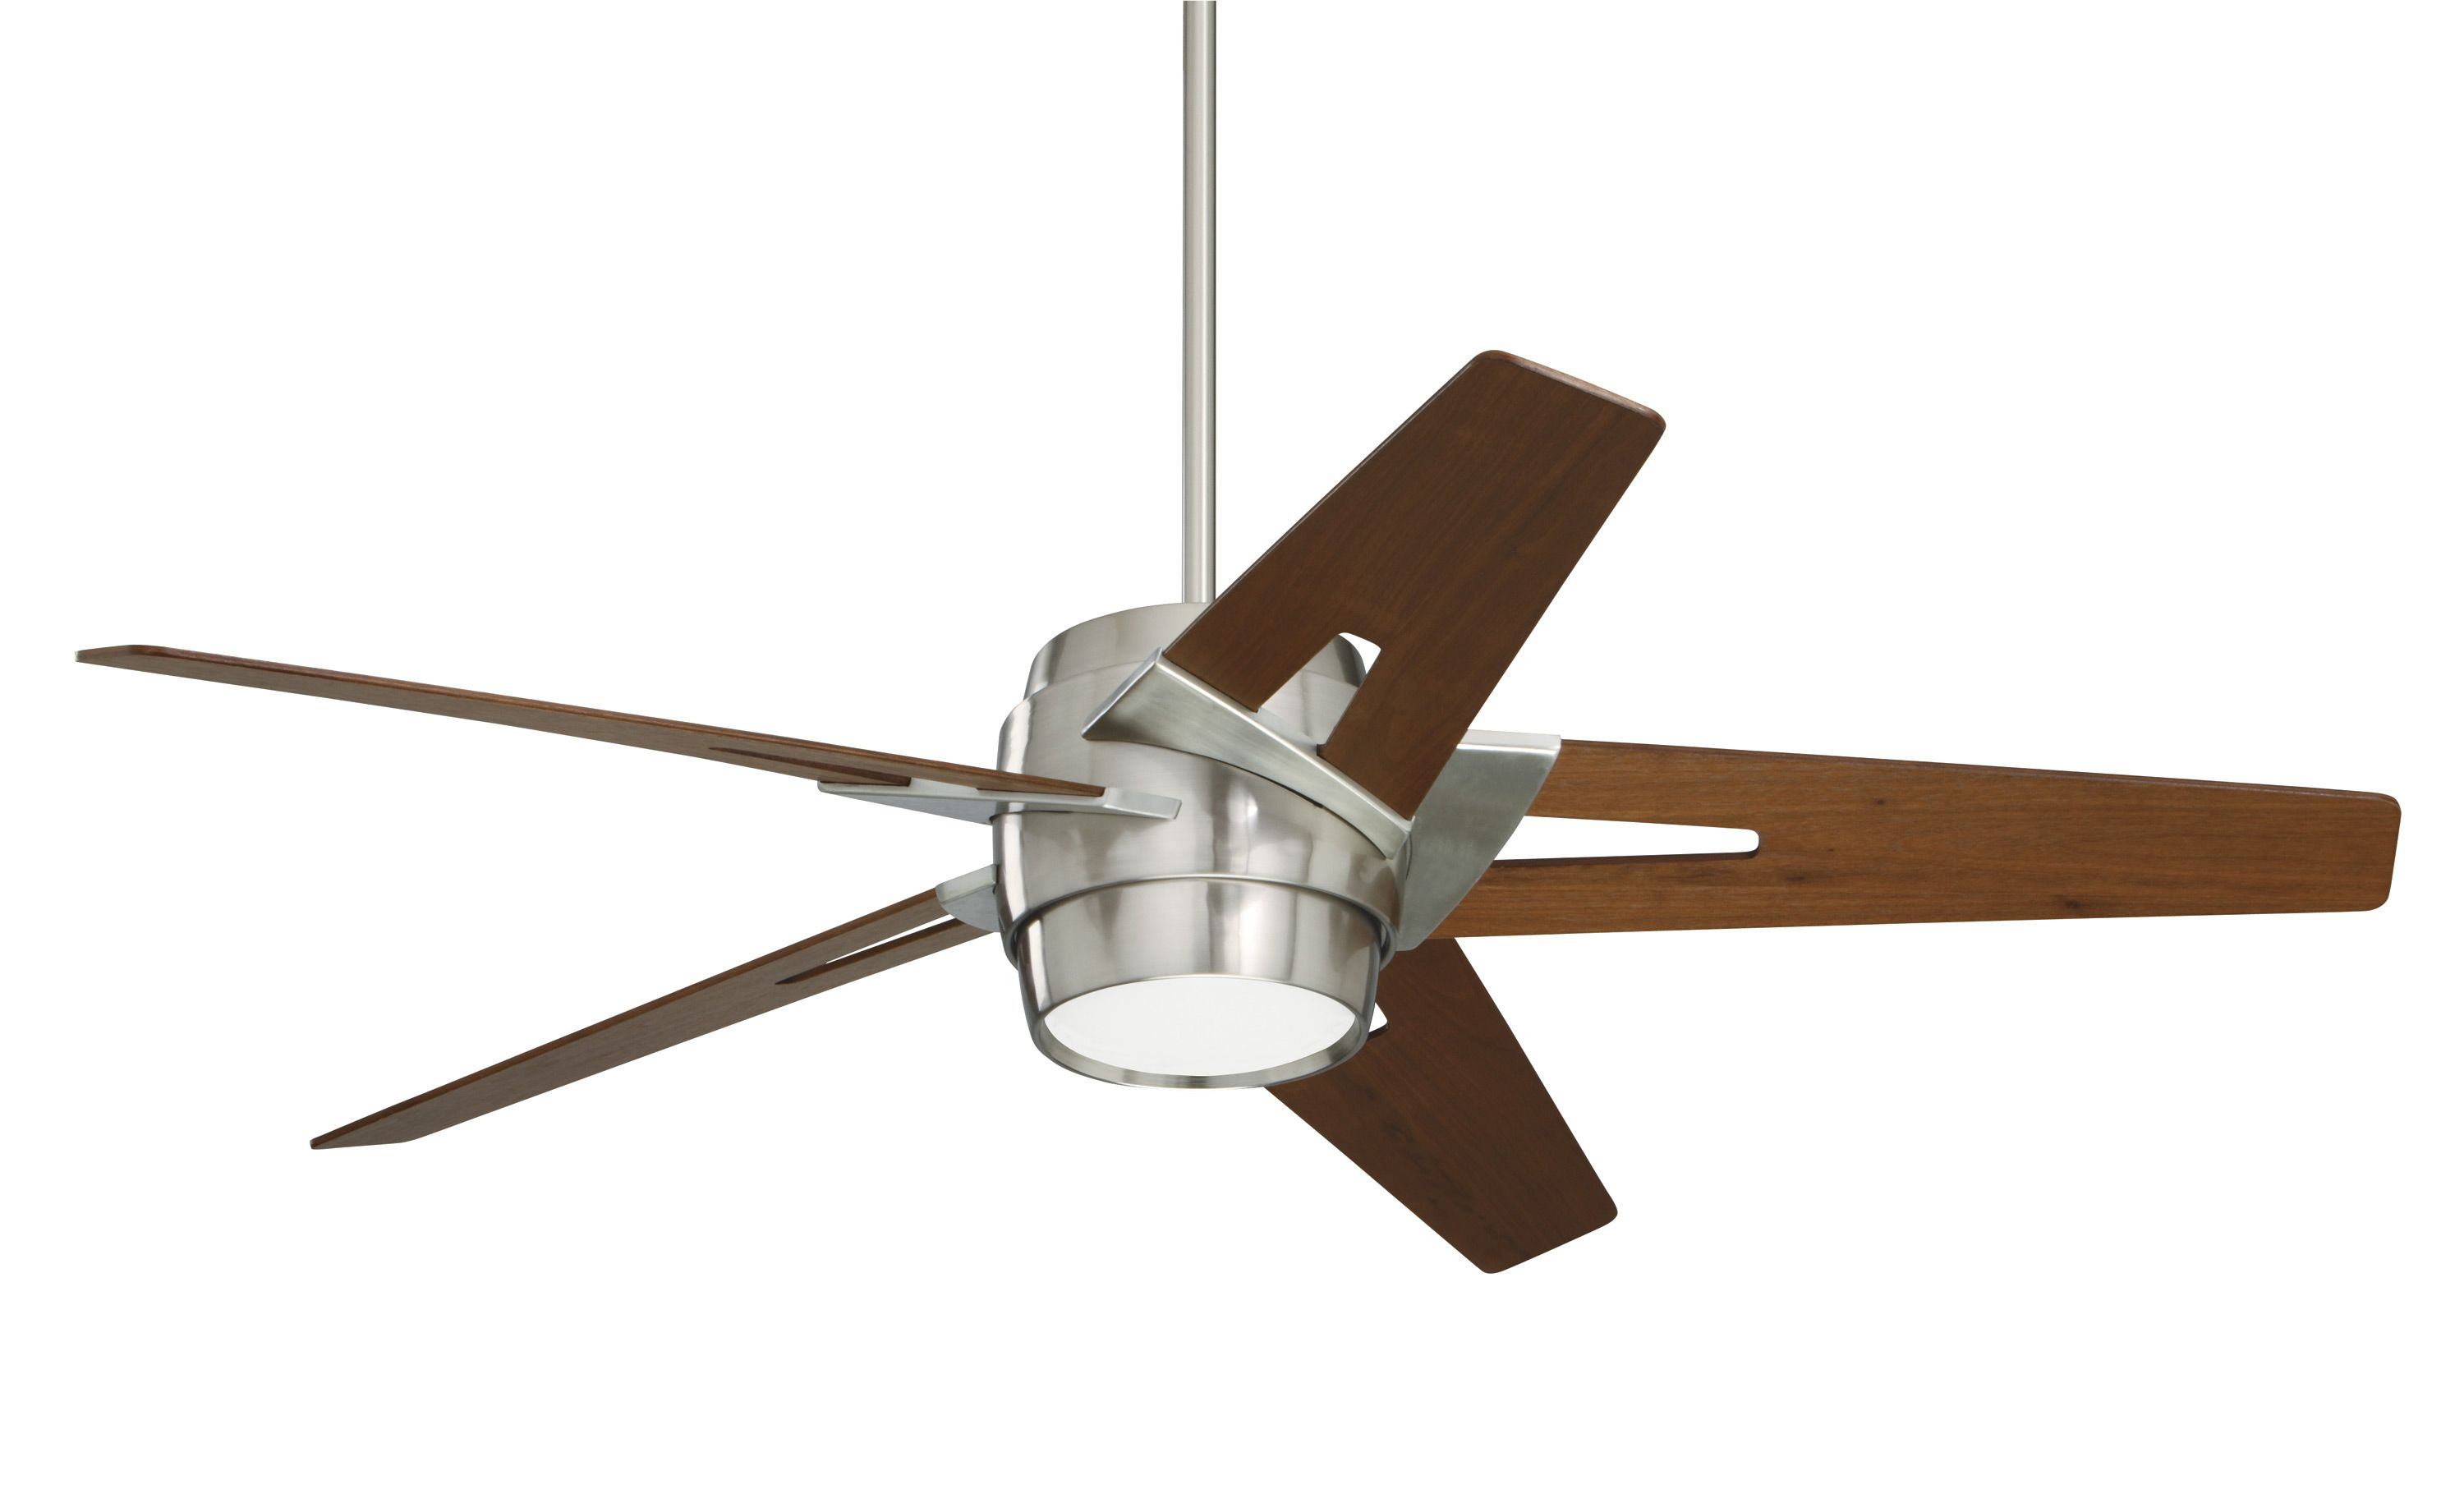 Our best quality premium energy fans are in our EcoMotor